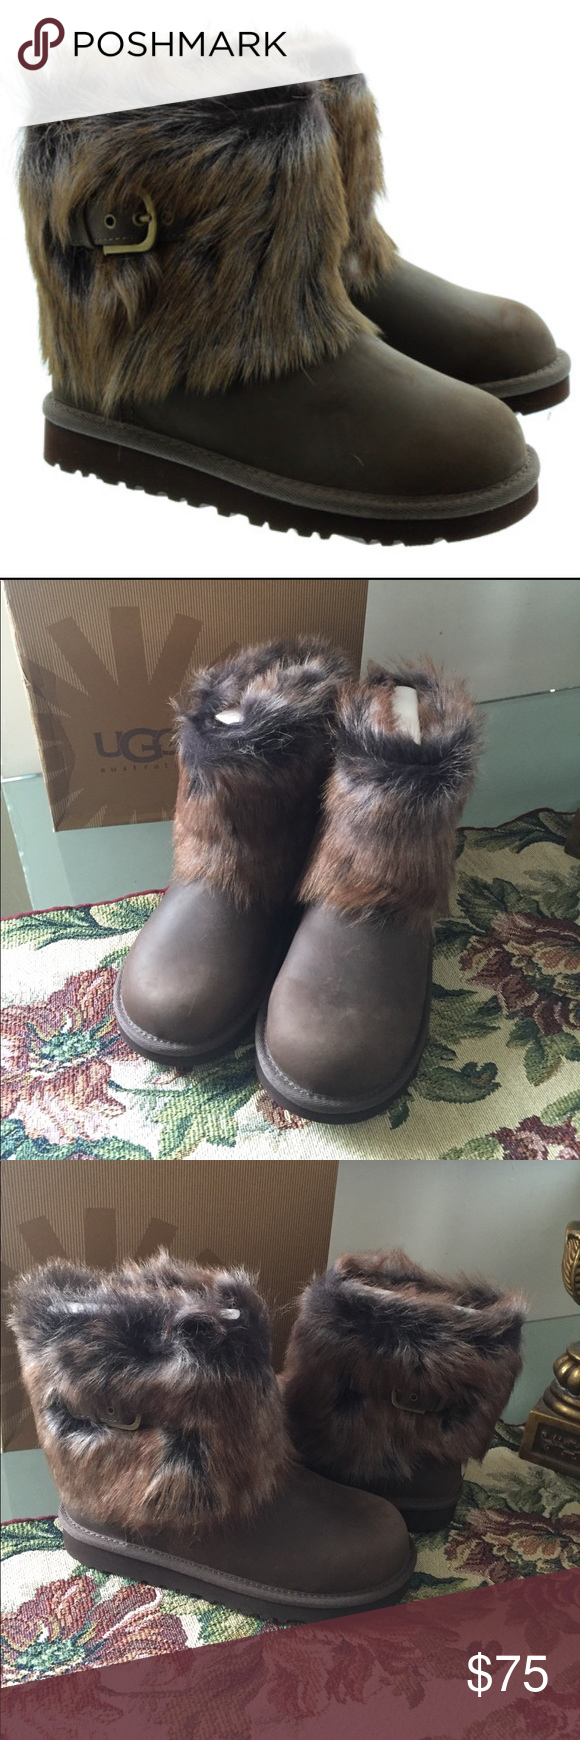 1857b491ec3 NEW UGG ELLEE LEATHER. Chocolate(big kids size 4) She is sure to ...